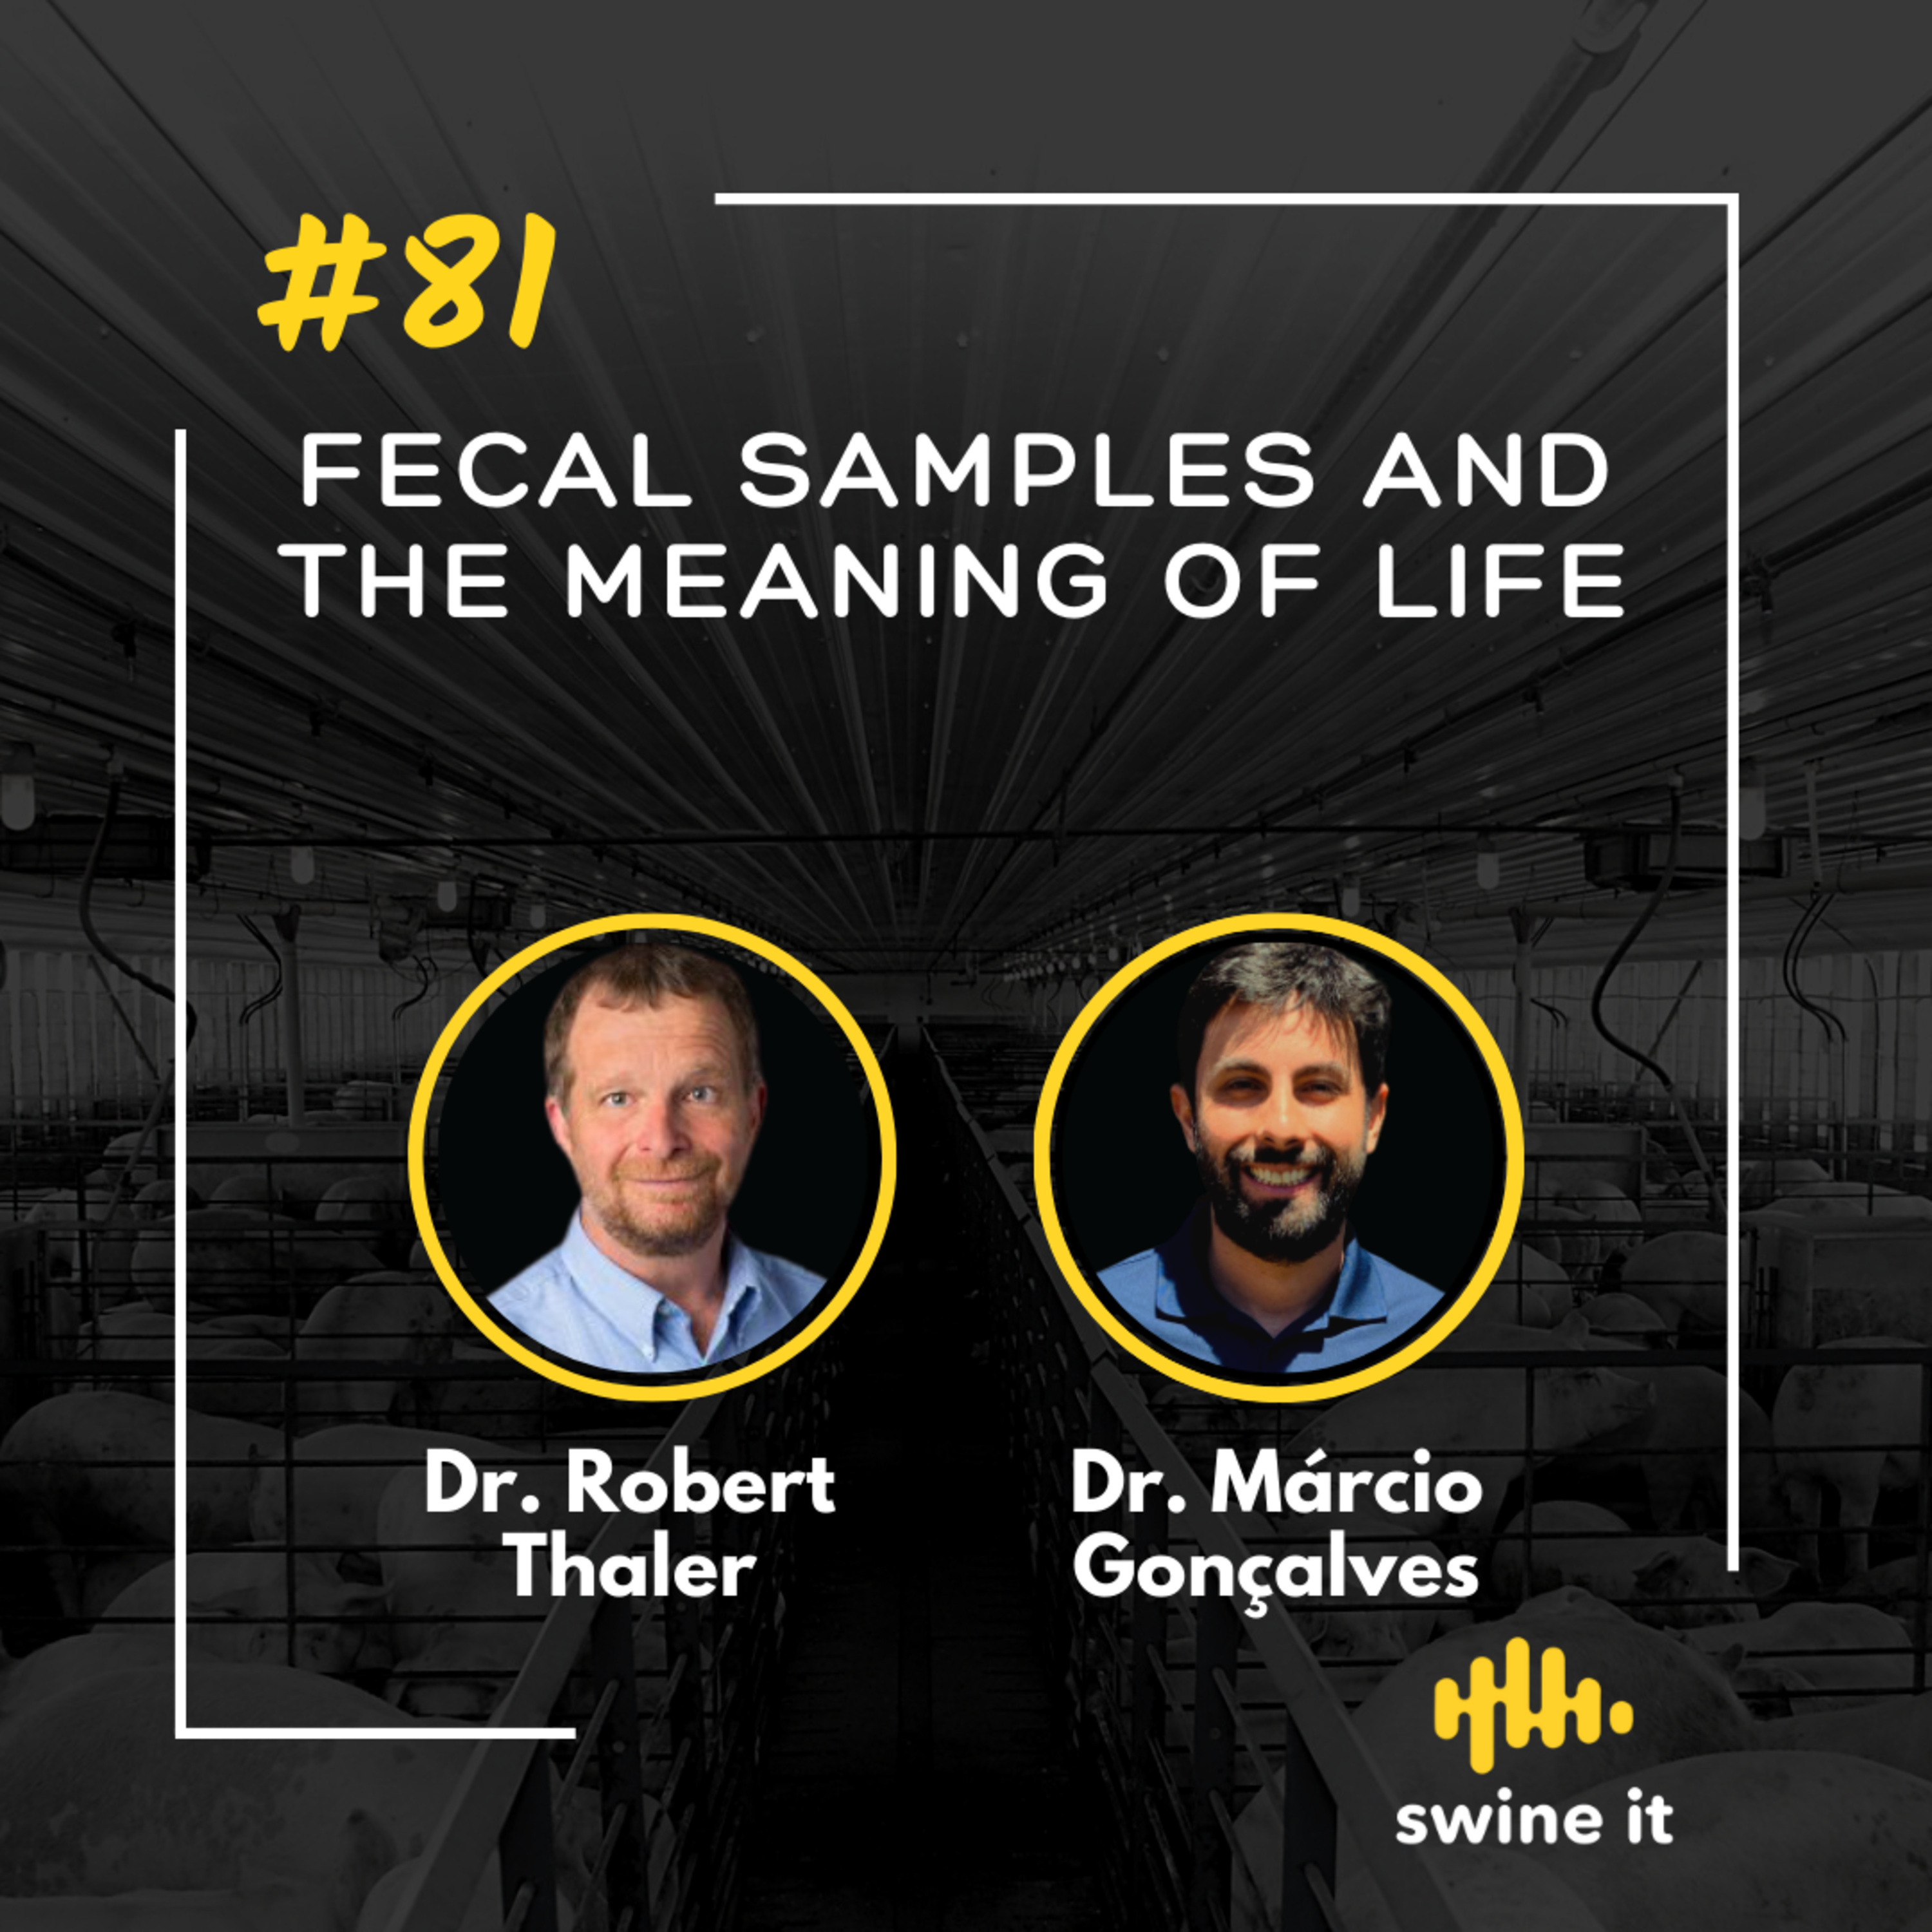 Fecal samples and the meaning of life - Dr. Robert Thaler